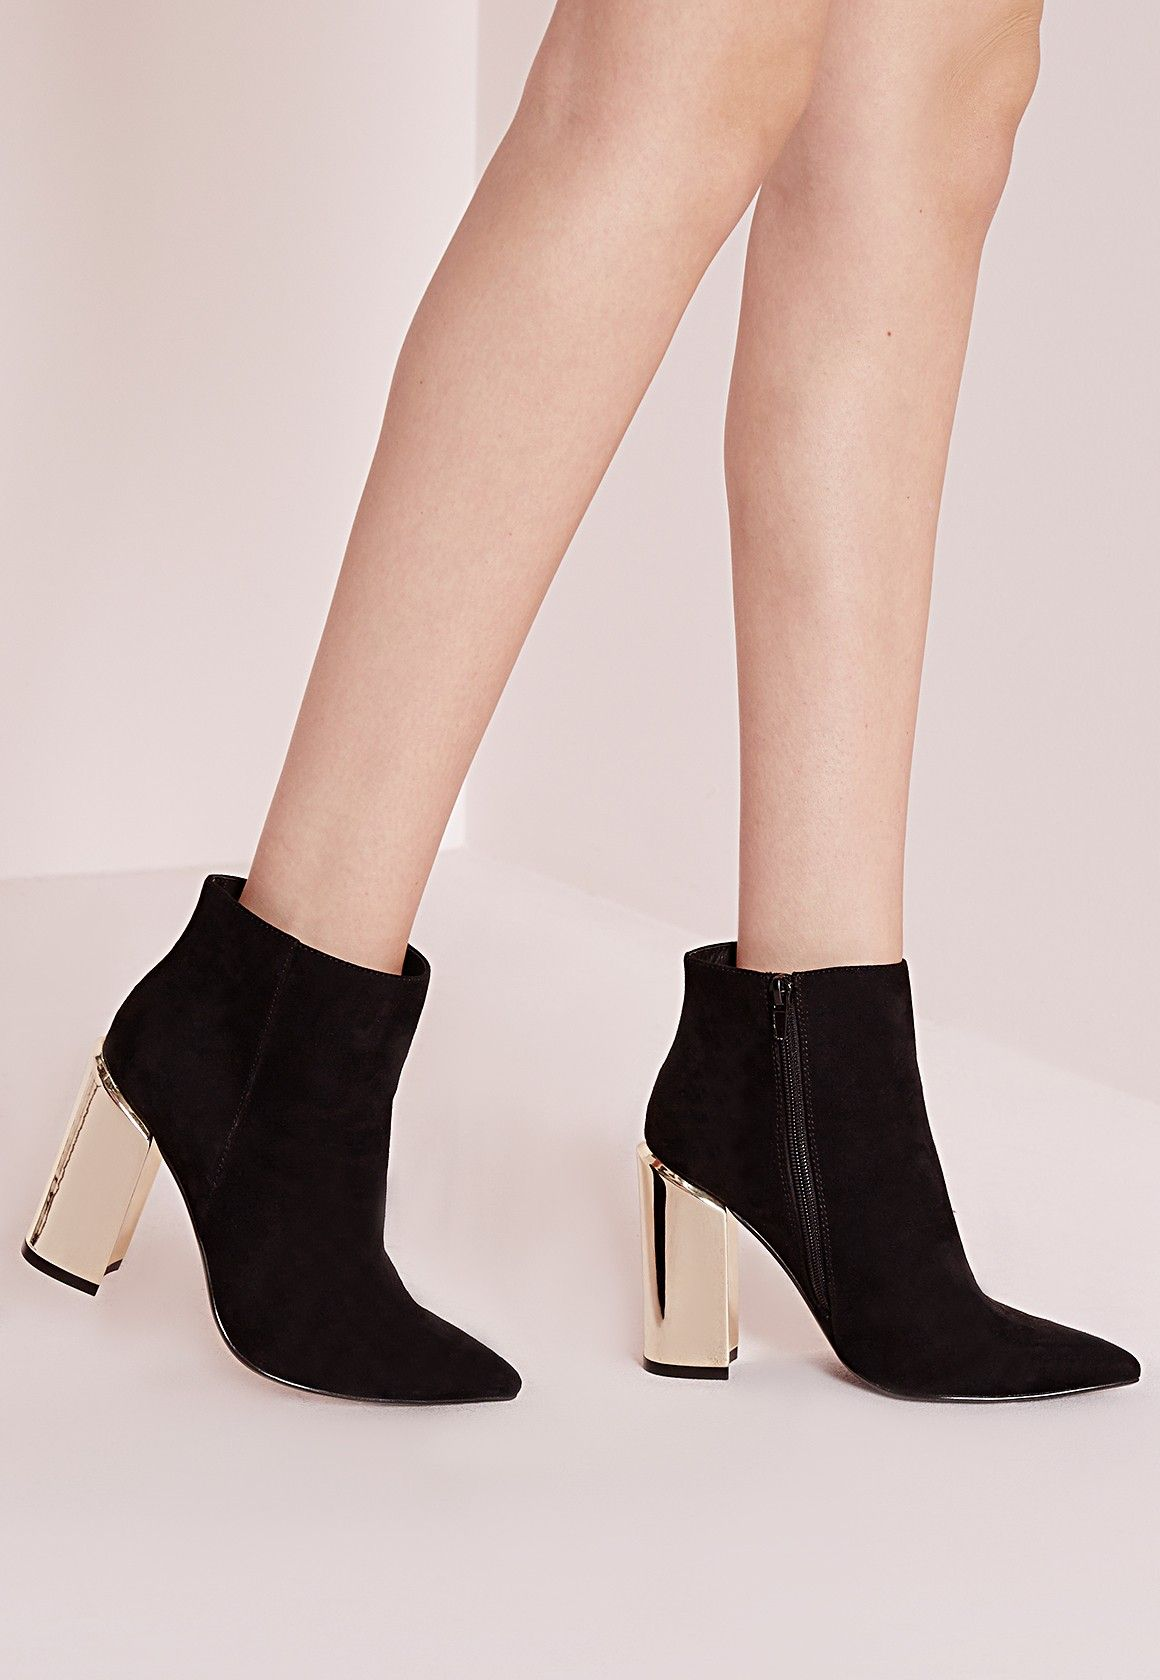 c69ca23872df Missguided - gold plated block heel ankle boots black